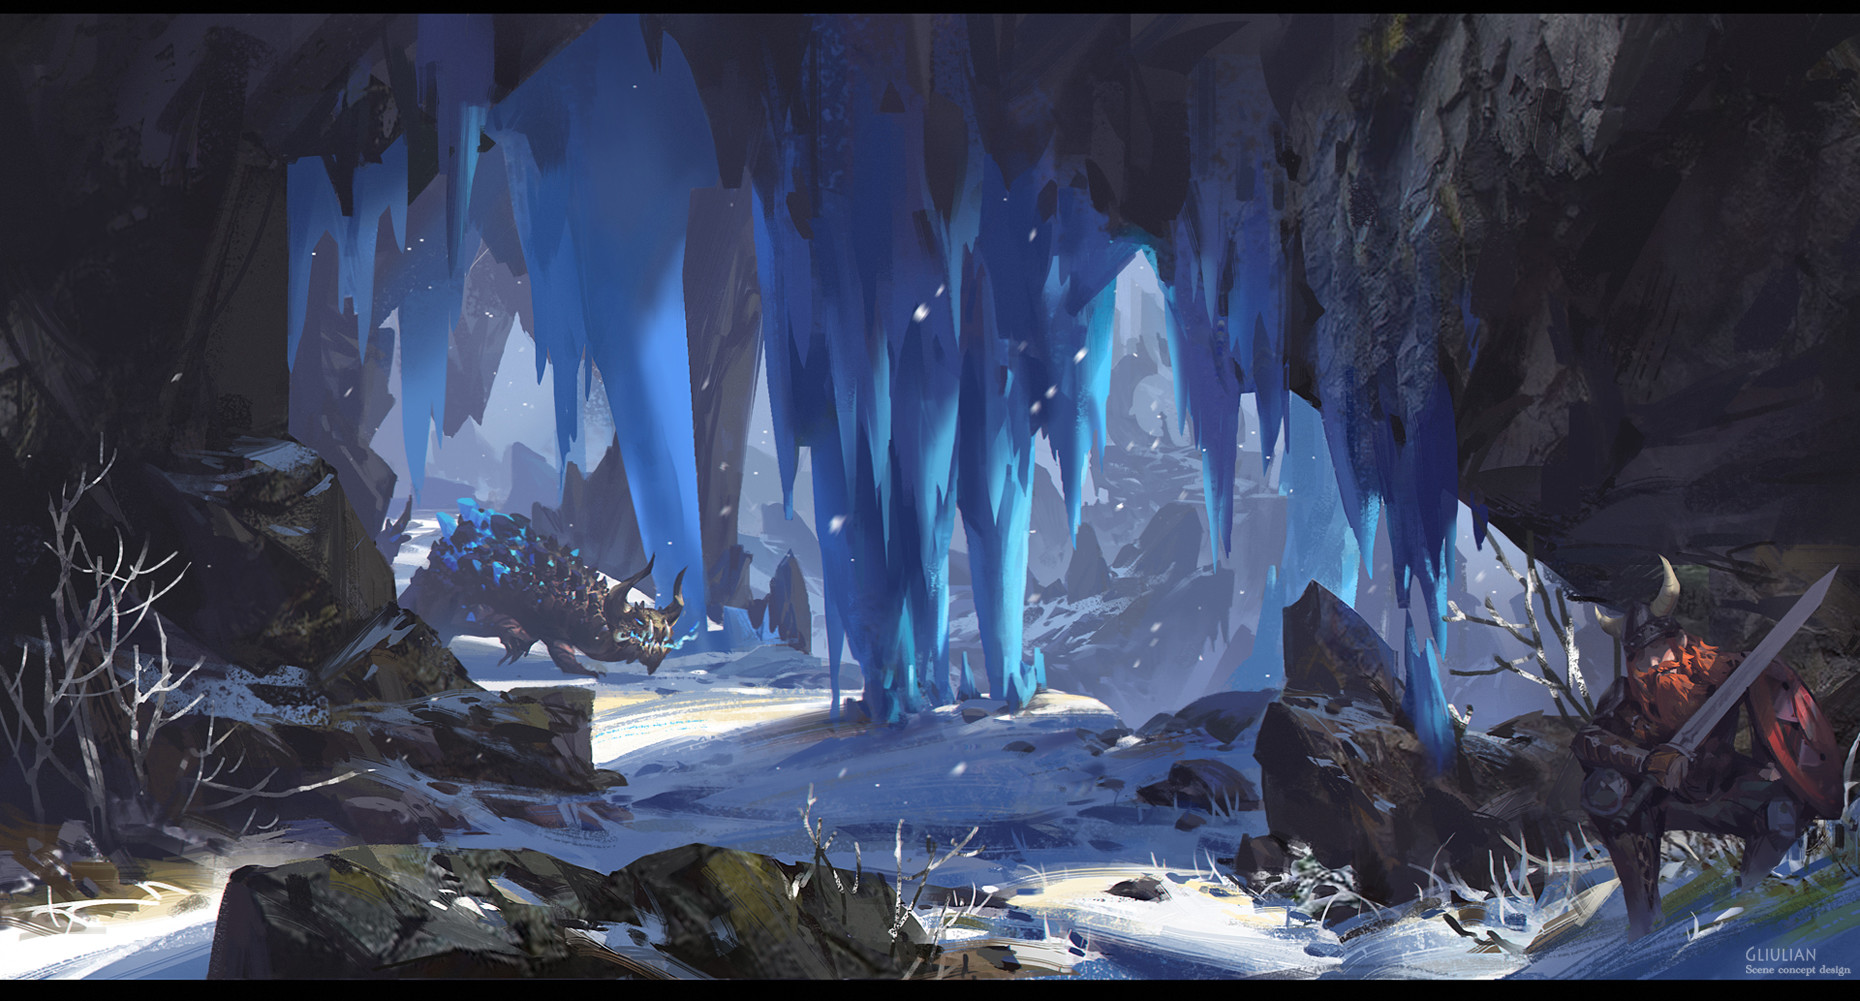 G Liulian digital painting concept art hunting dragon blue ice